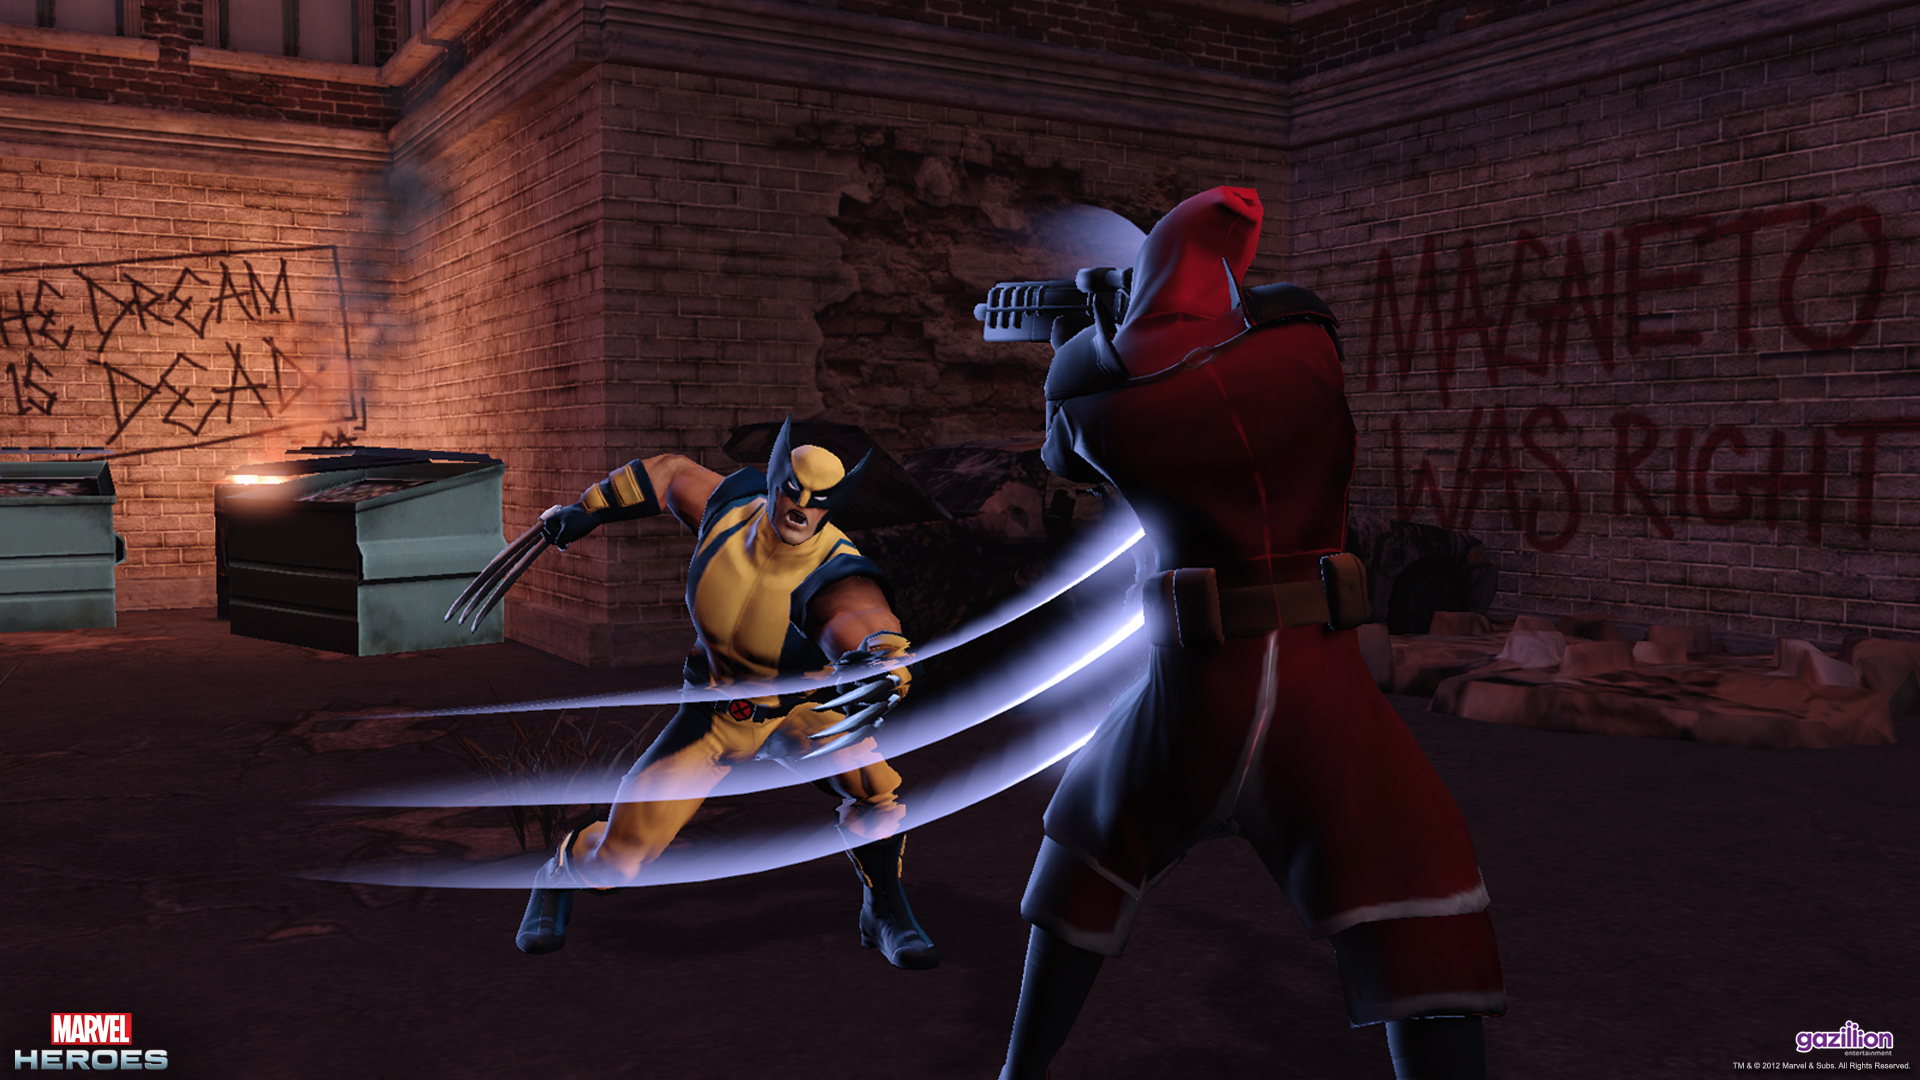 A peak at the free-to-play Marvel Heroes MMORPG